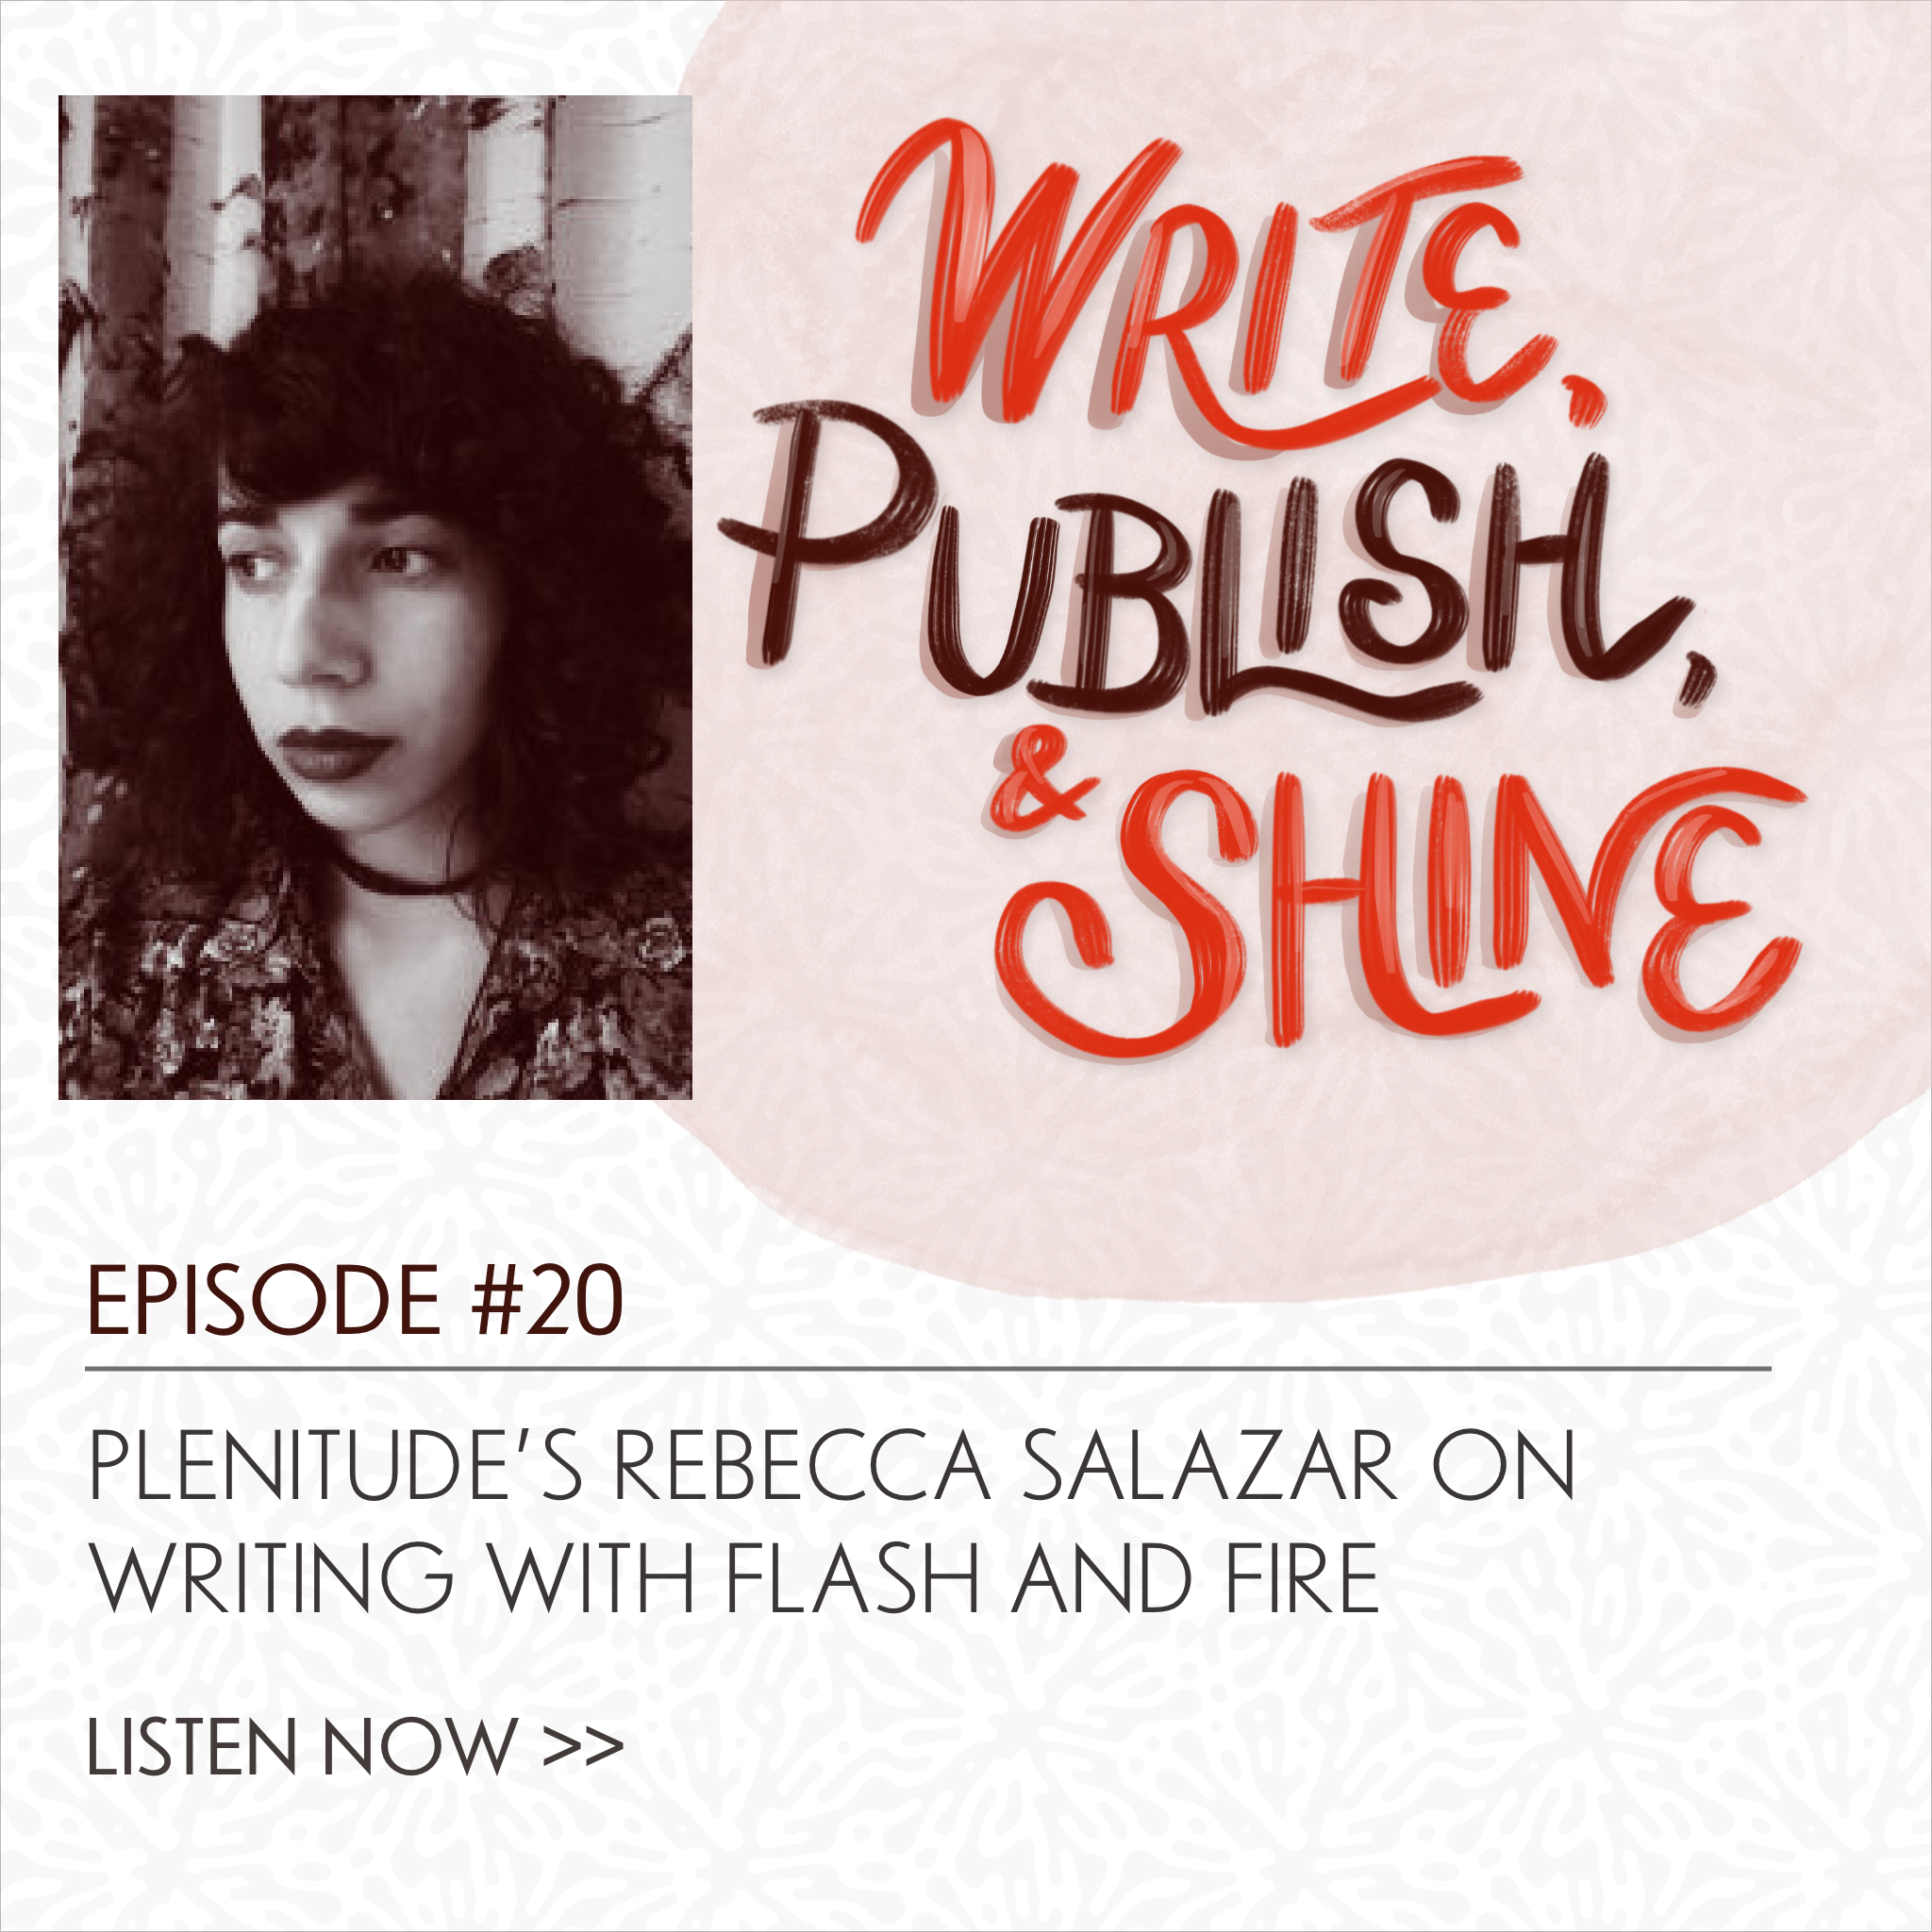 20 // Plenitude's Rebecca Salazar on Writing with Flash AND Fire [Replay]